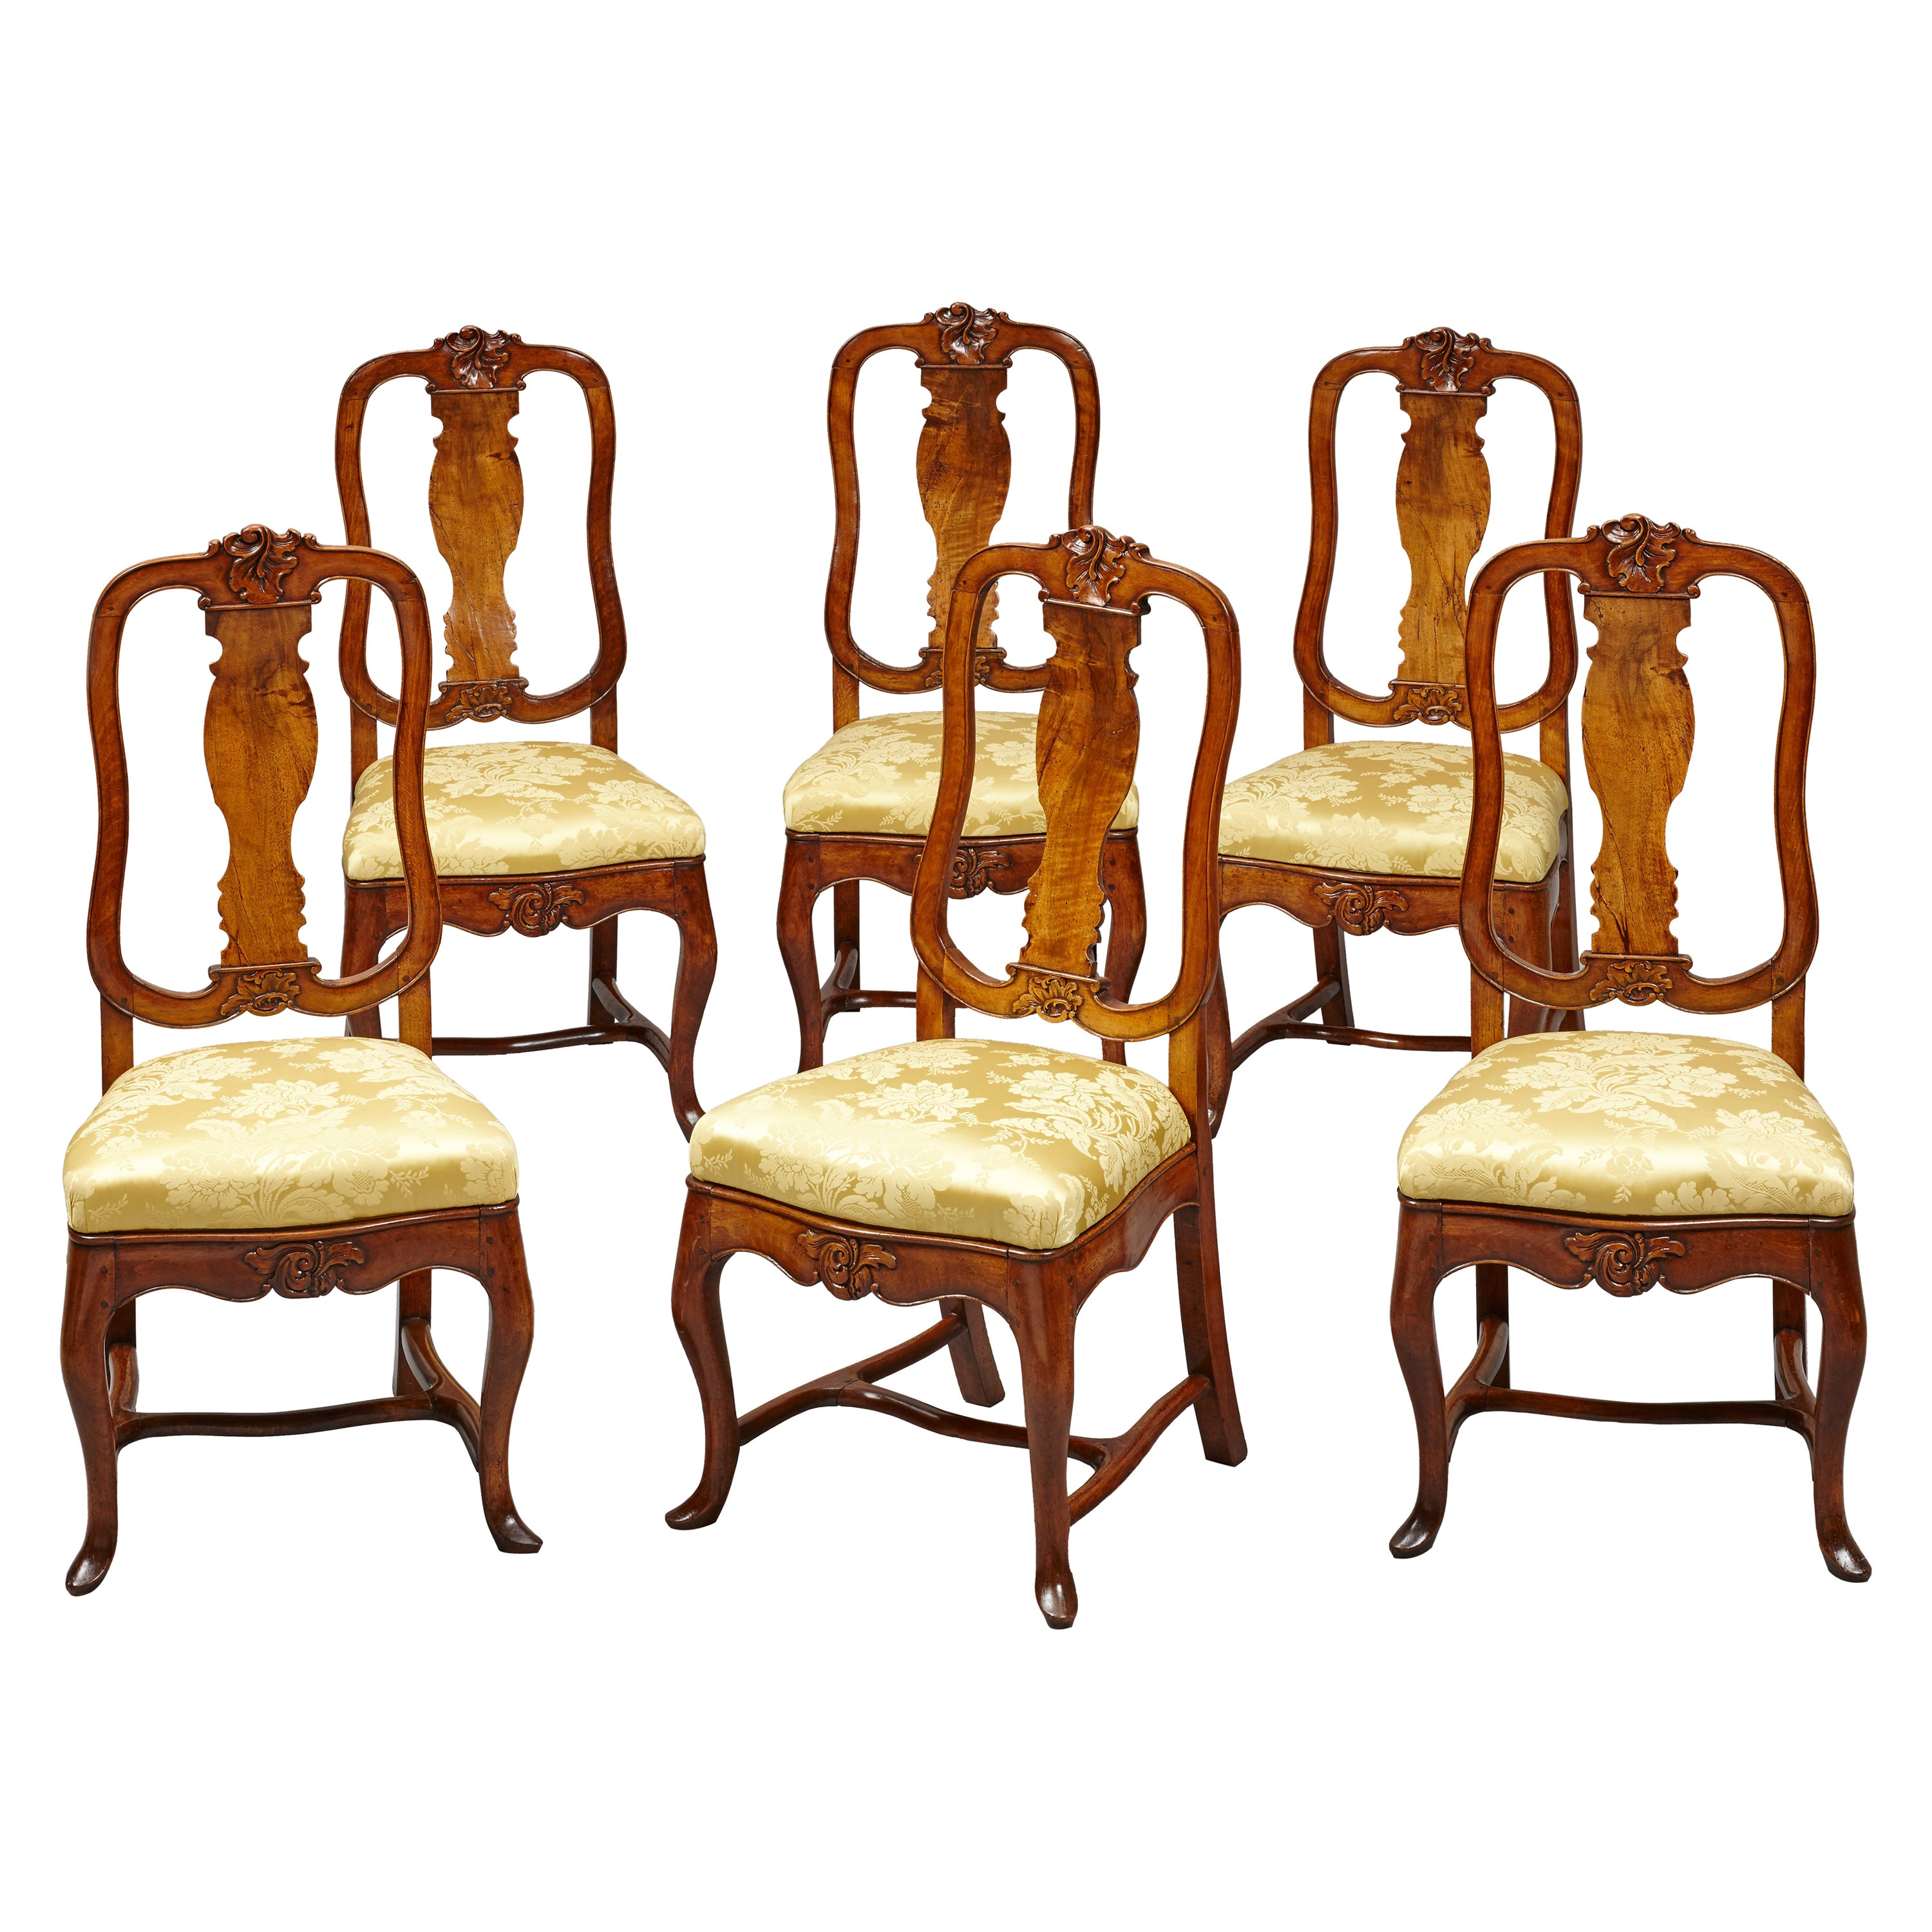 Set of Six 18th Century German Baroque Walnut Dining Chairs